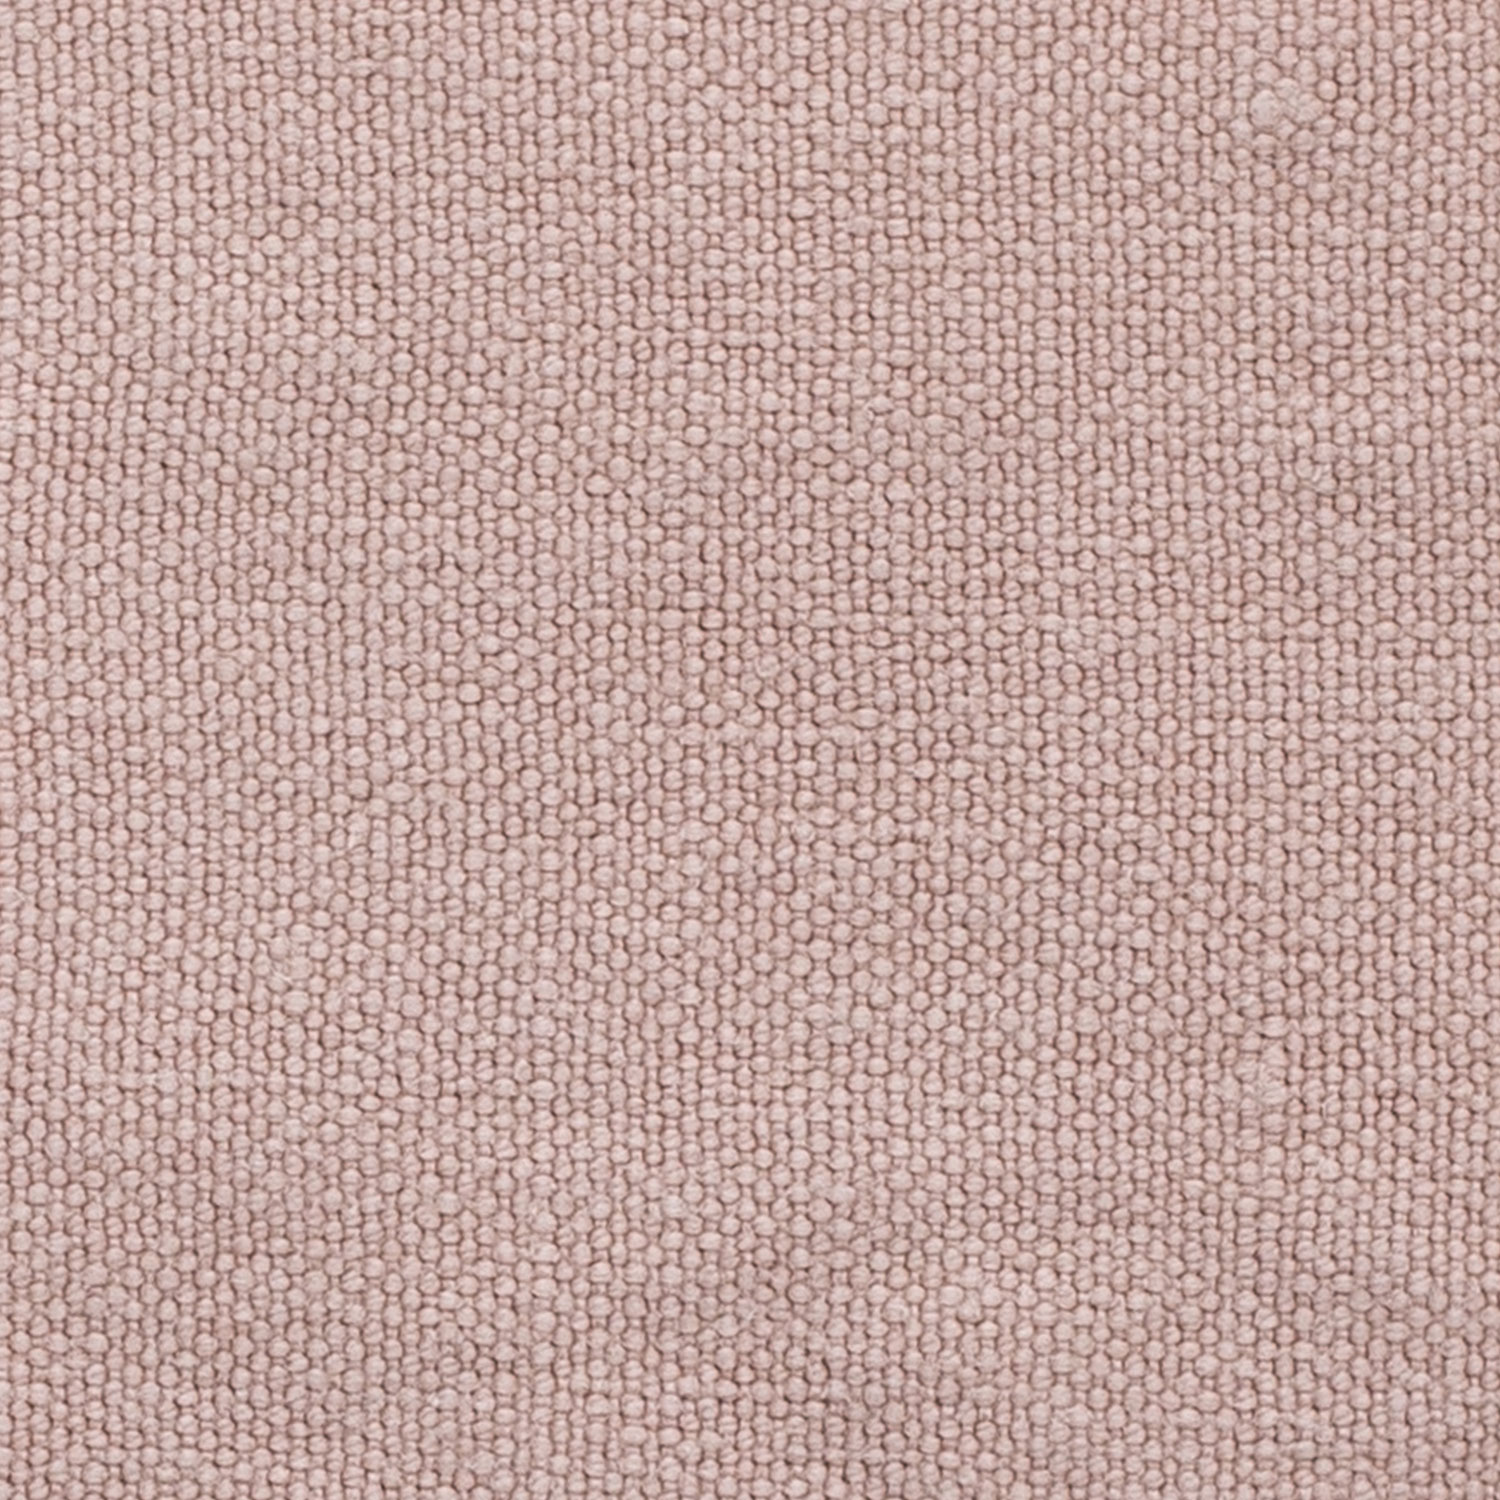 Plain, Chunky Stonewashed Linen Old Pink